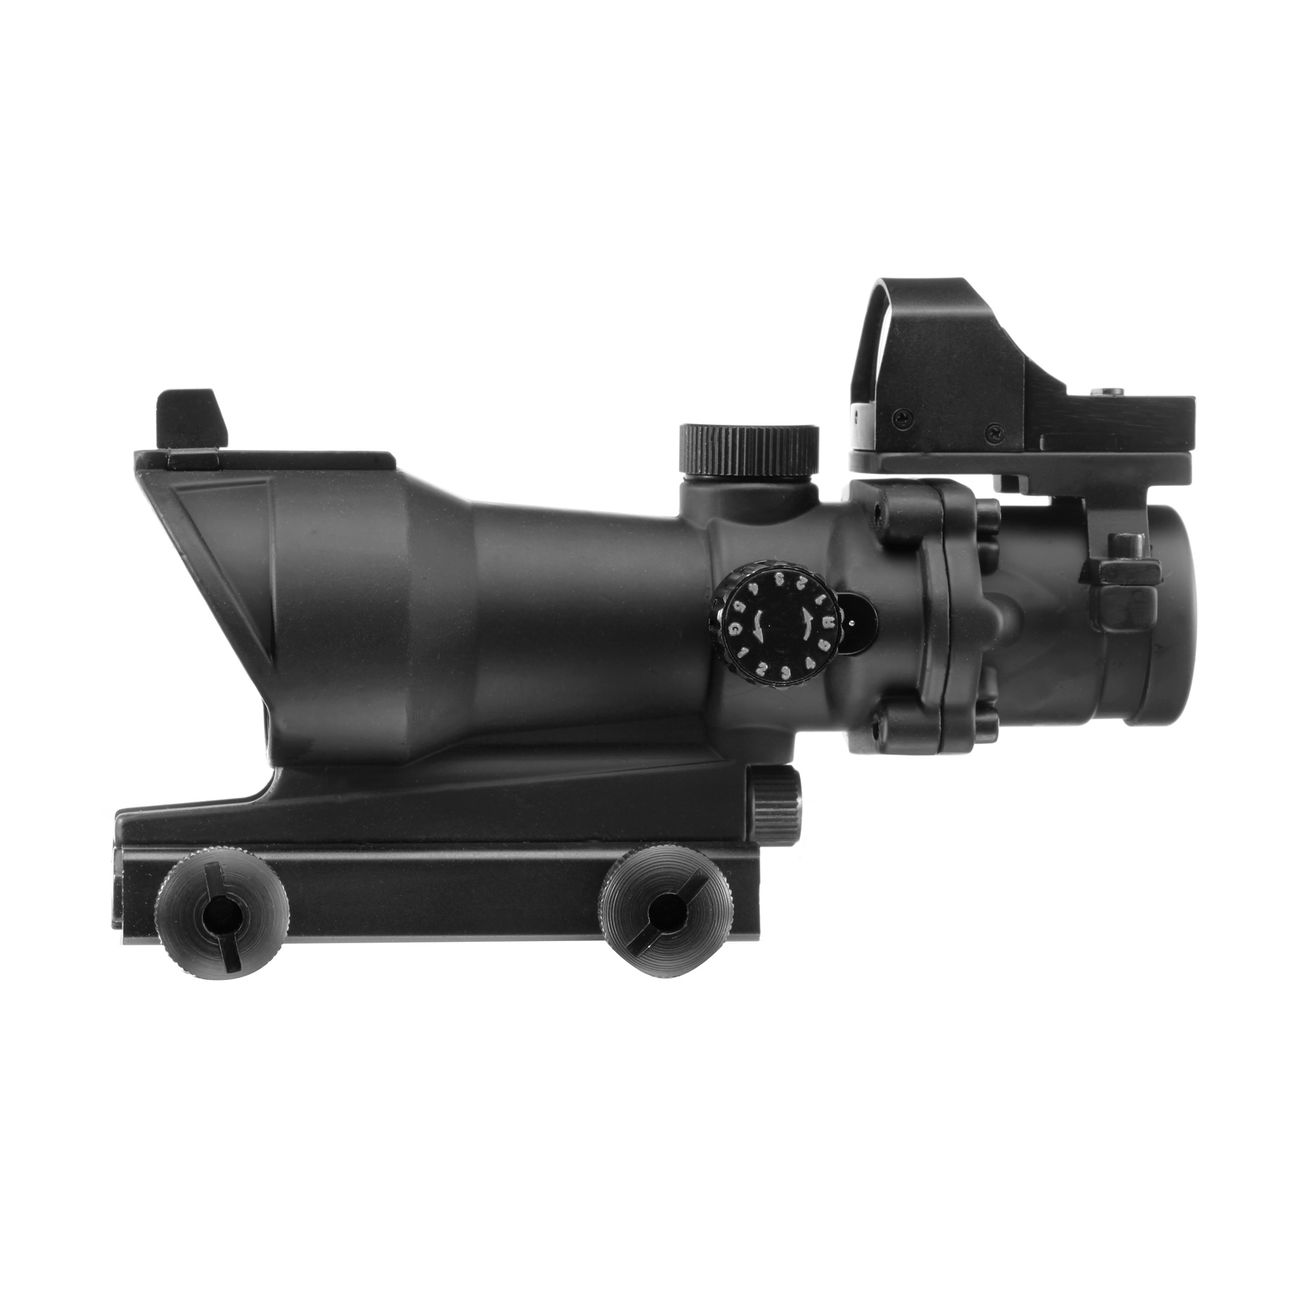 Aim-O TA01 Style Scope 4x32 beleuchtet mit Mini Red Dot schwarz AO 5320-BK 3